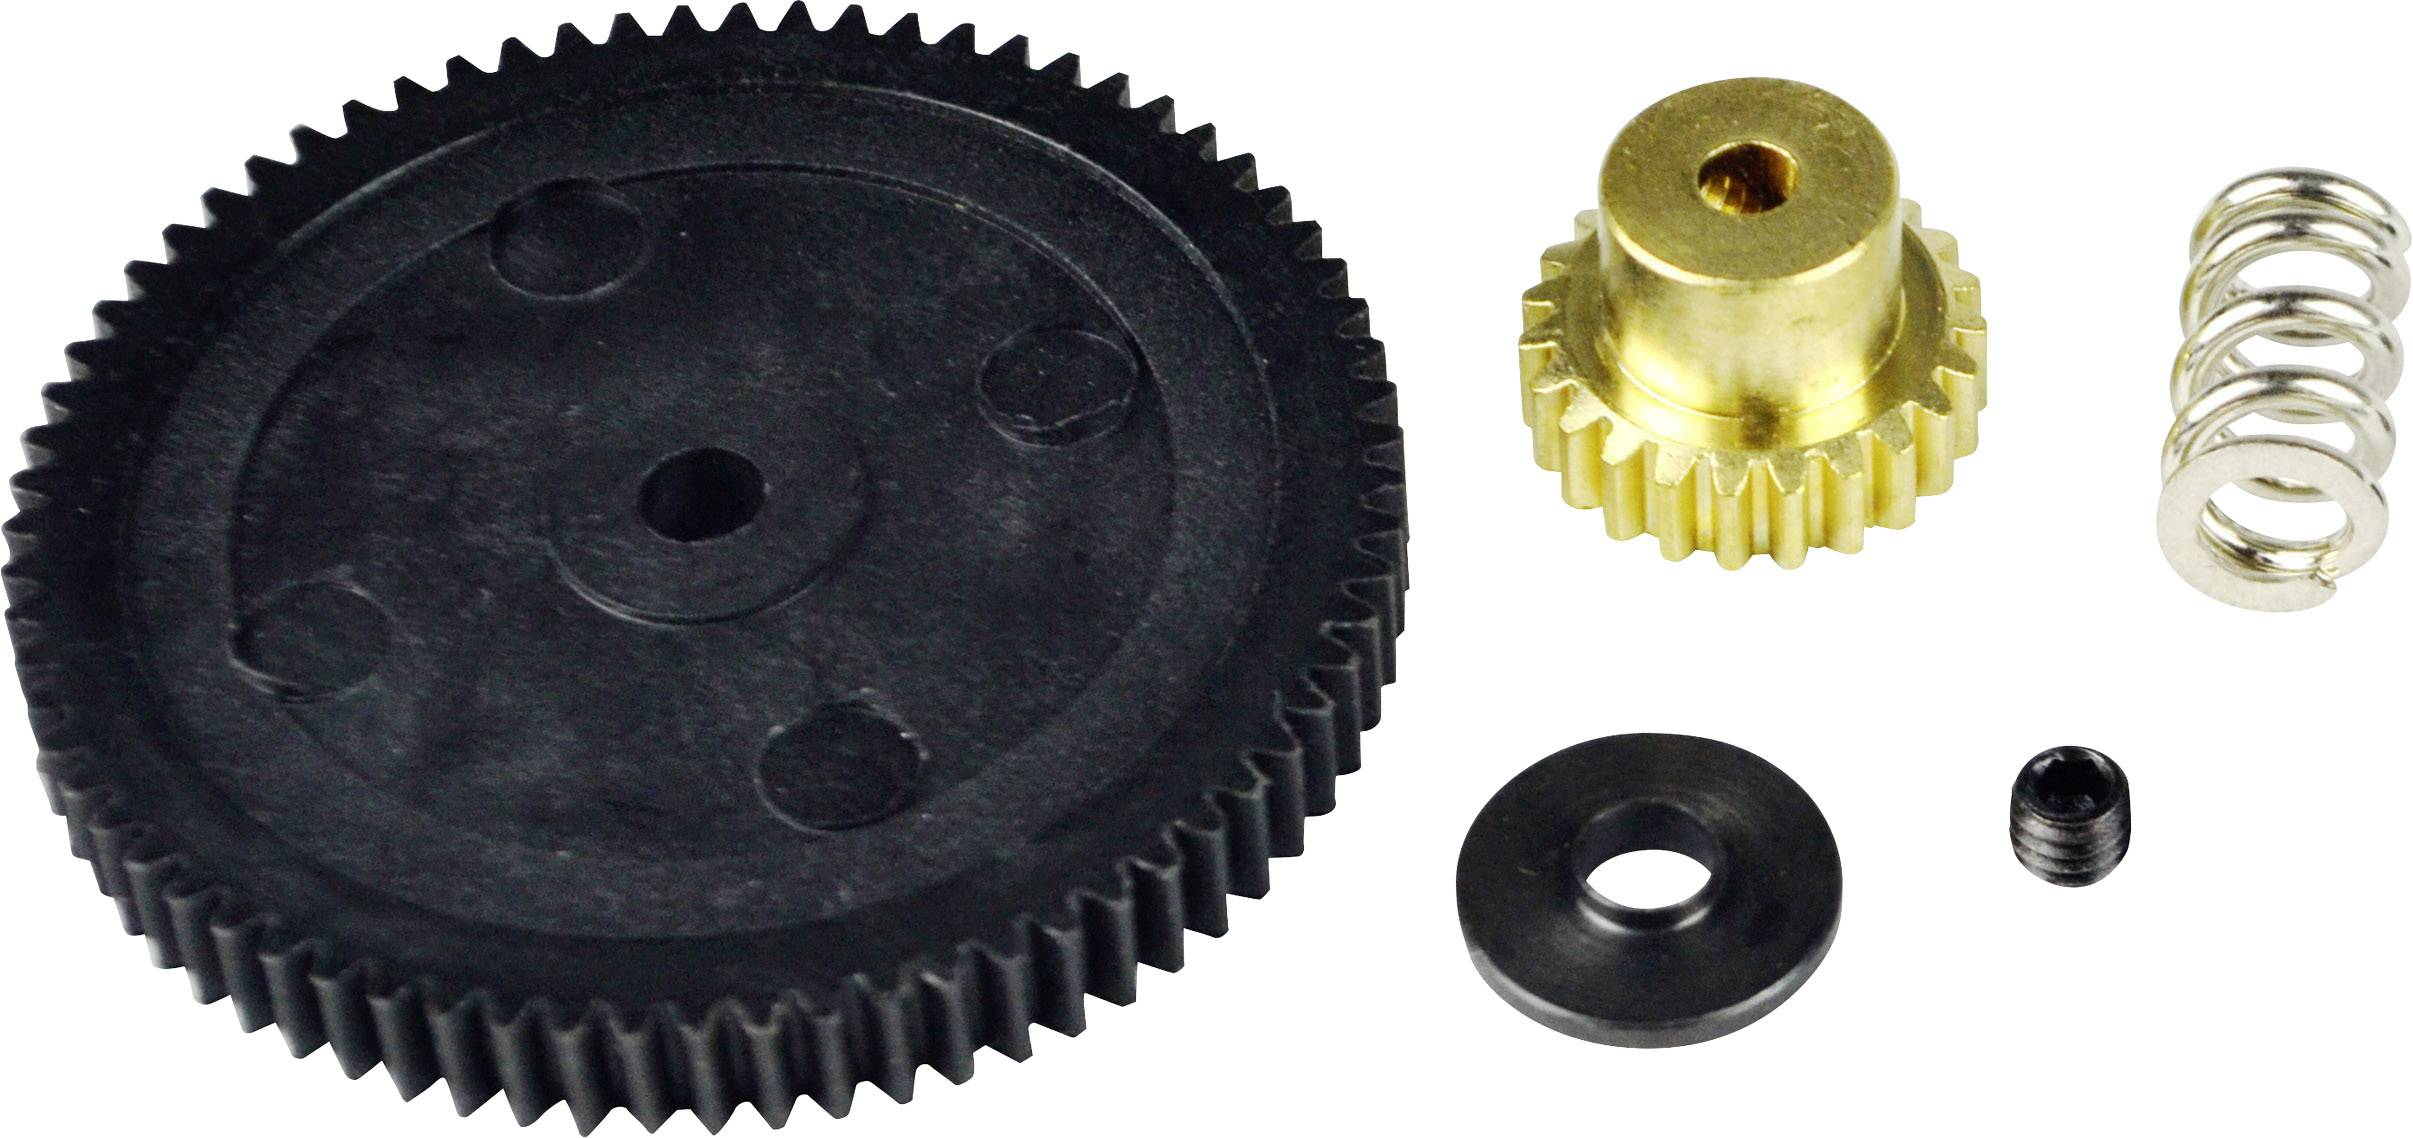 1341060 Reely ET Differential-Getriebe